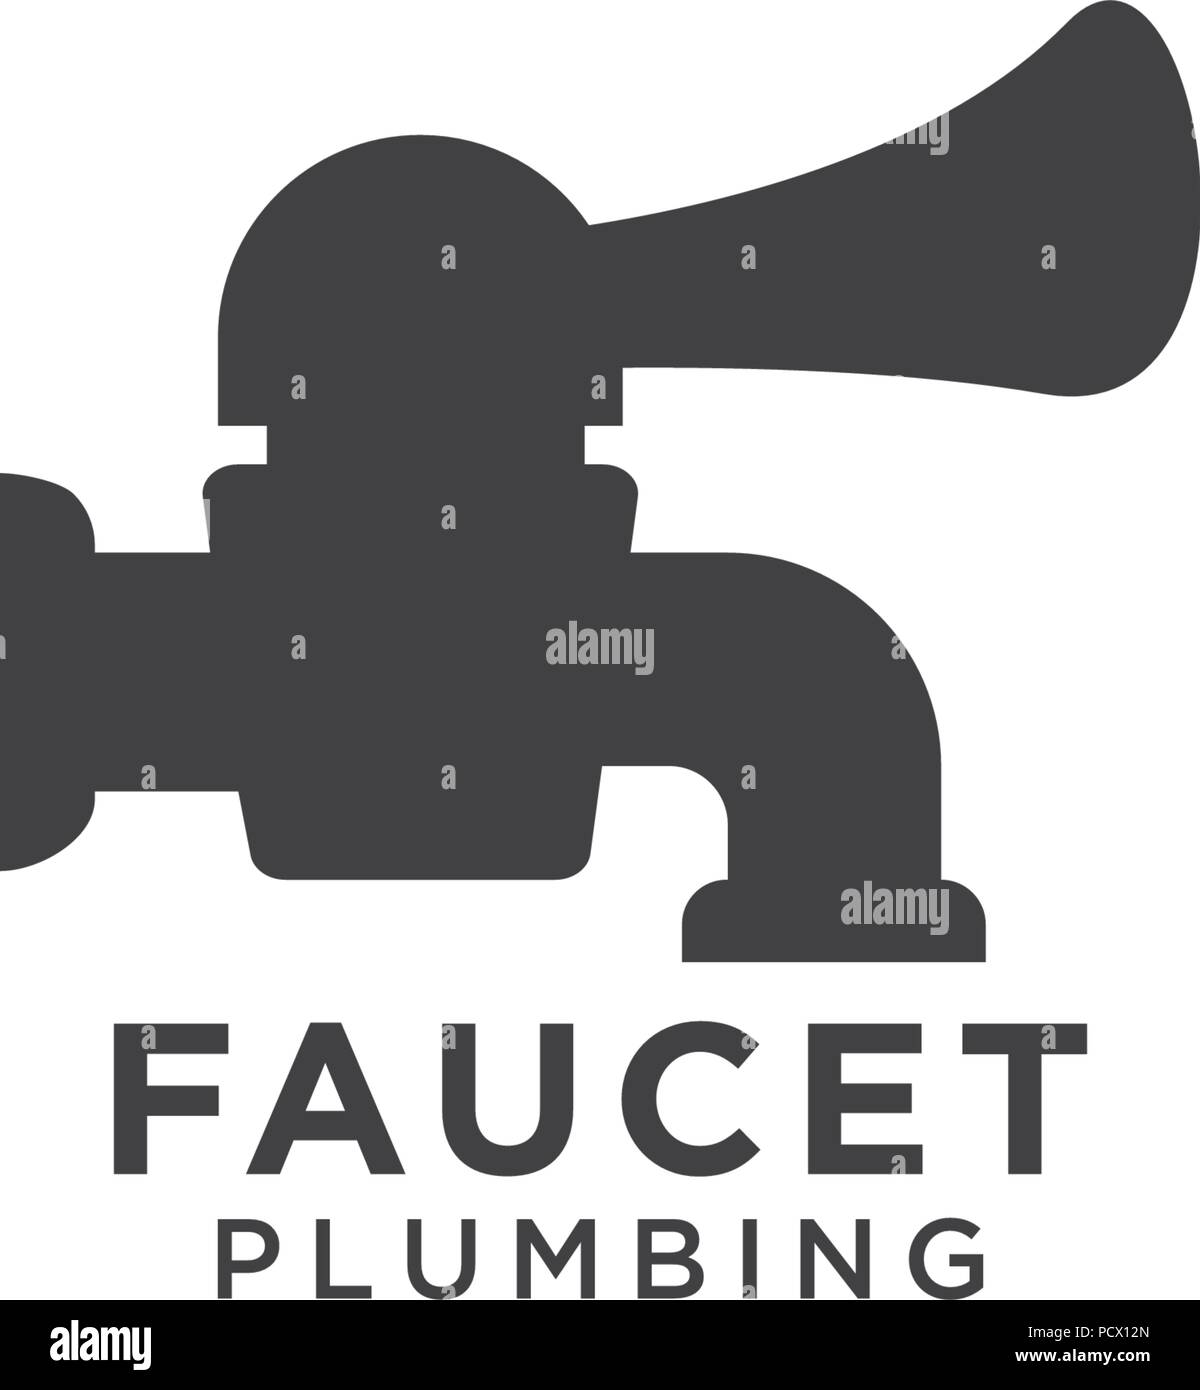 Illustration of faucet plumbing logo design template Stock Vector ...